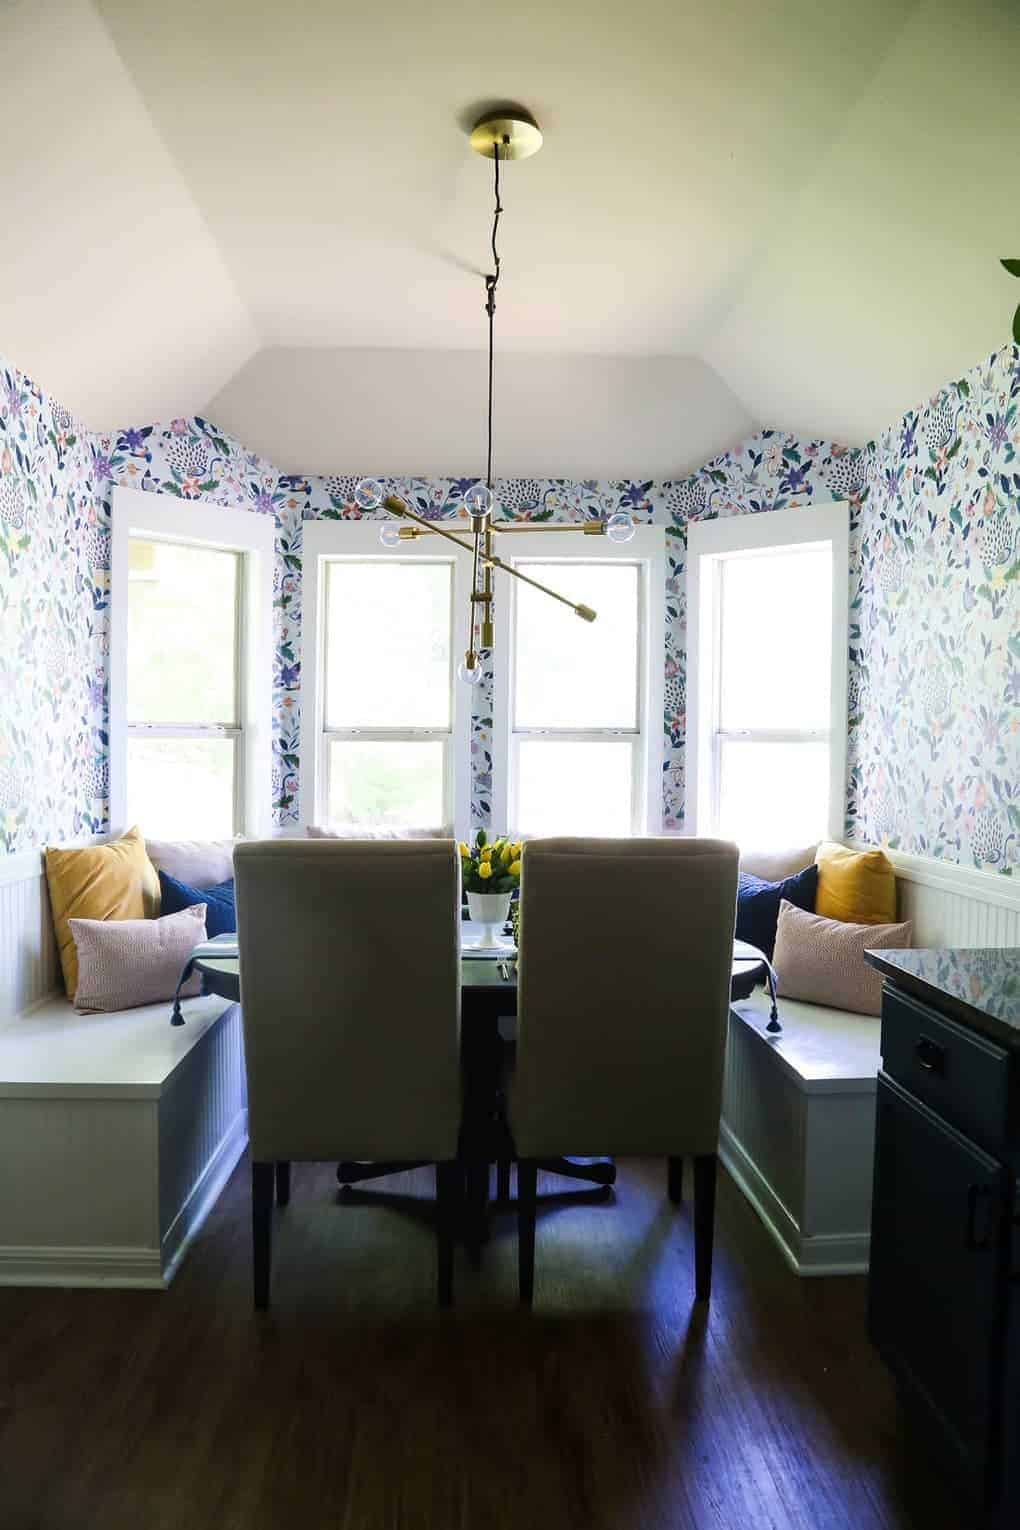 After picture with light and bright dining room with floral wallpaper, built in bench seating, modern gold light and throw pillows